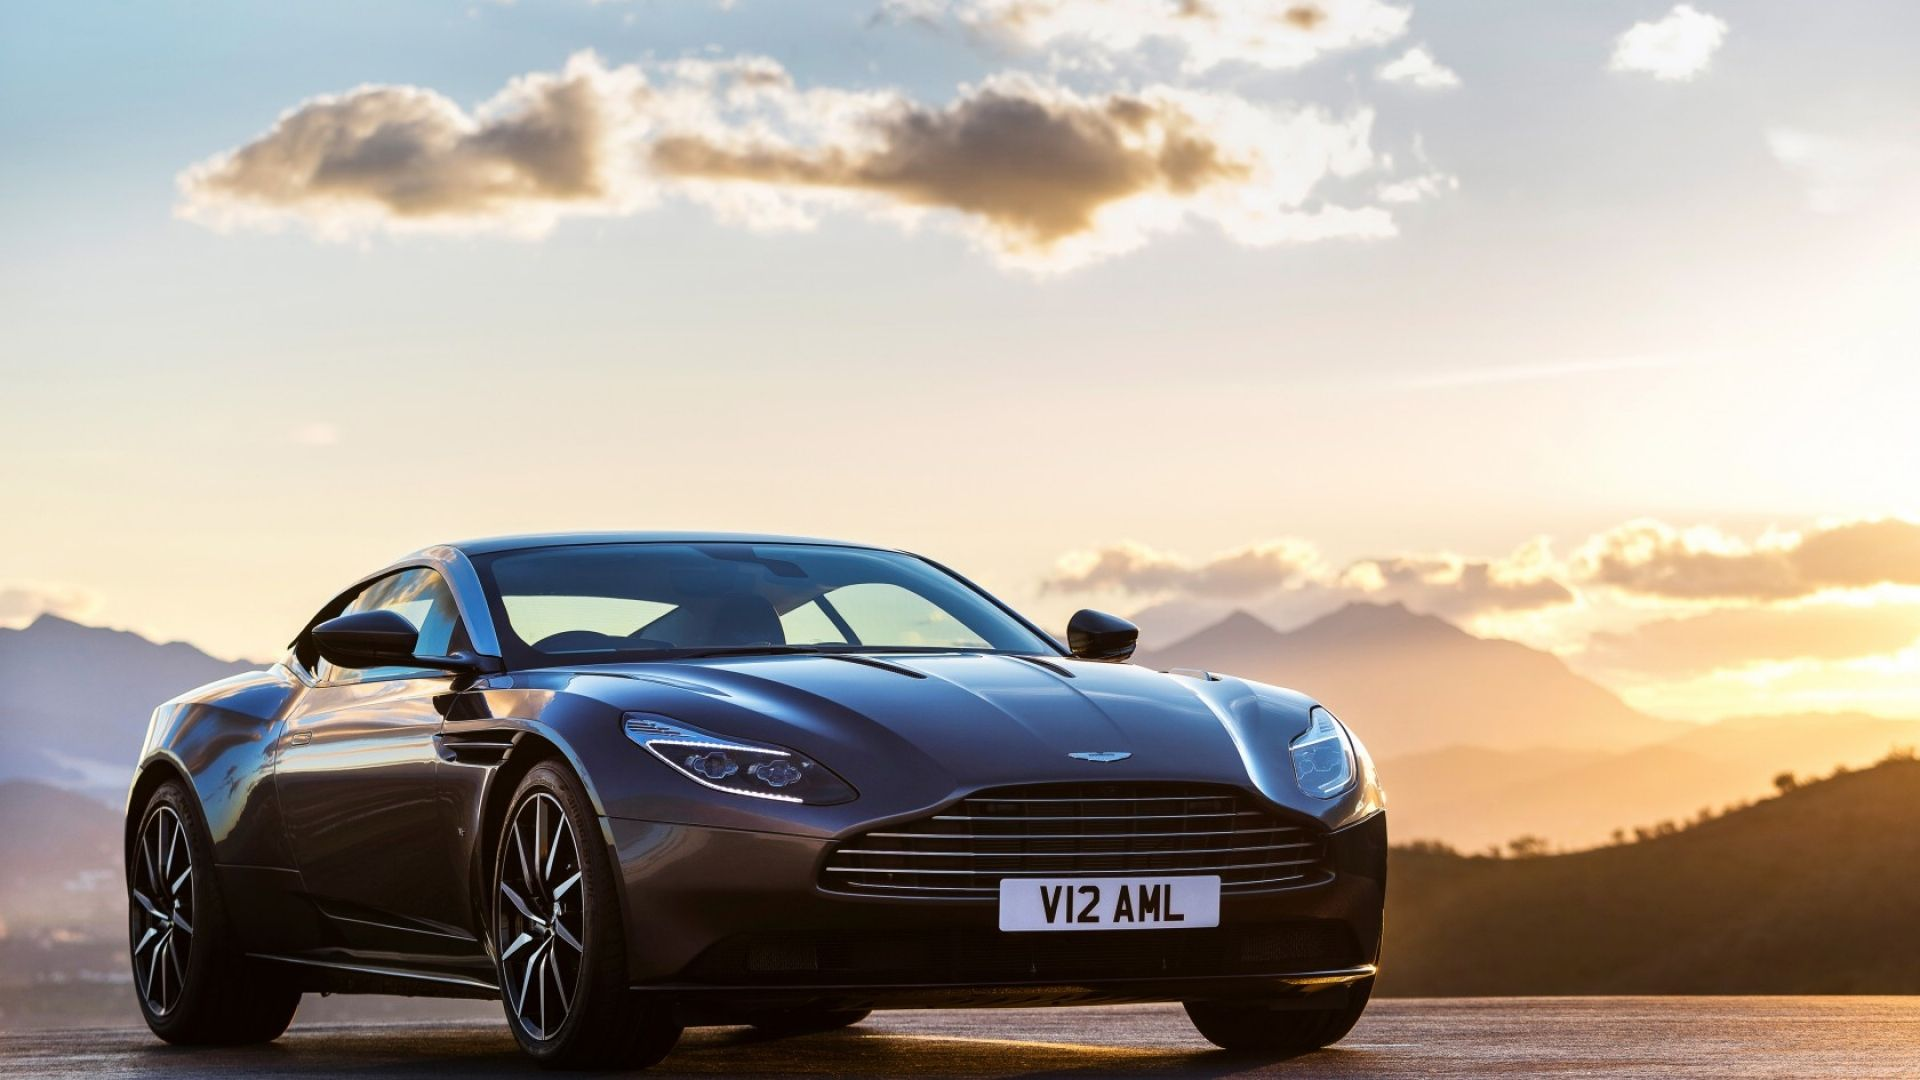 Download Wallpapers 1920x1080 Aston martin, Db11, Side view Full HD